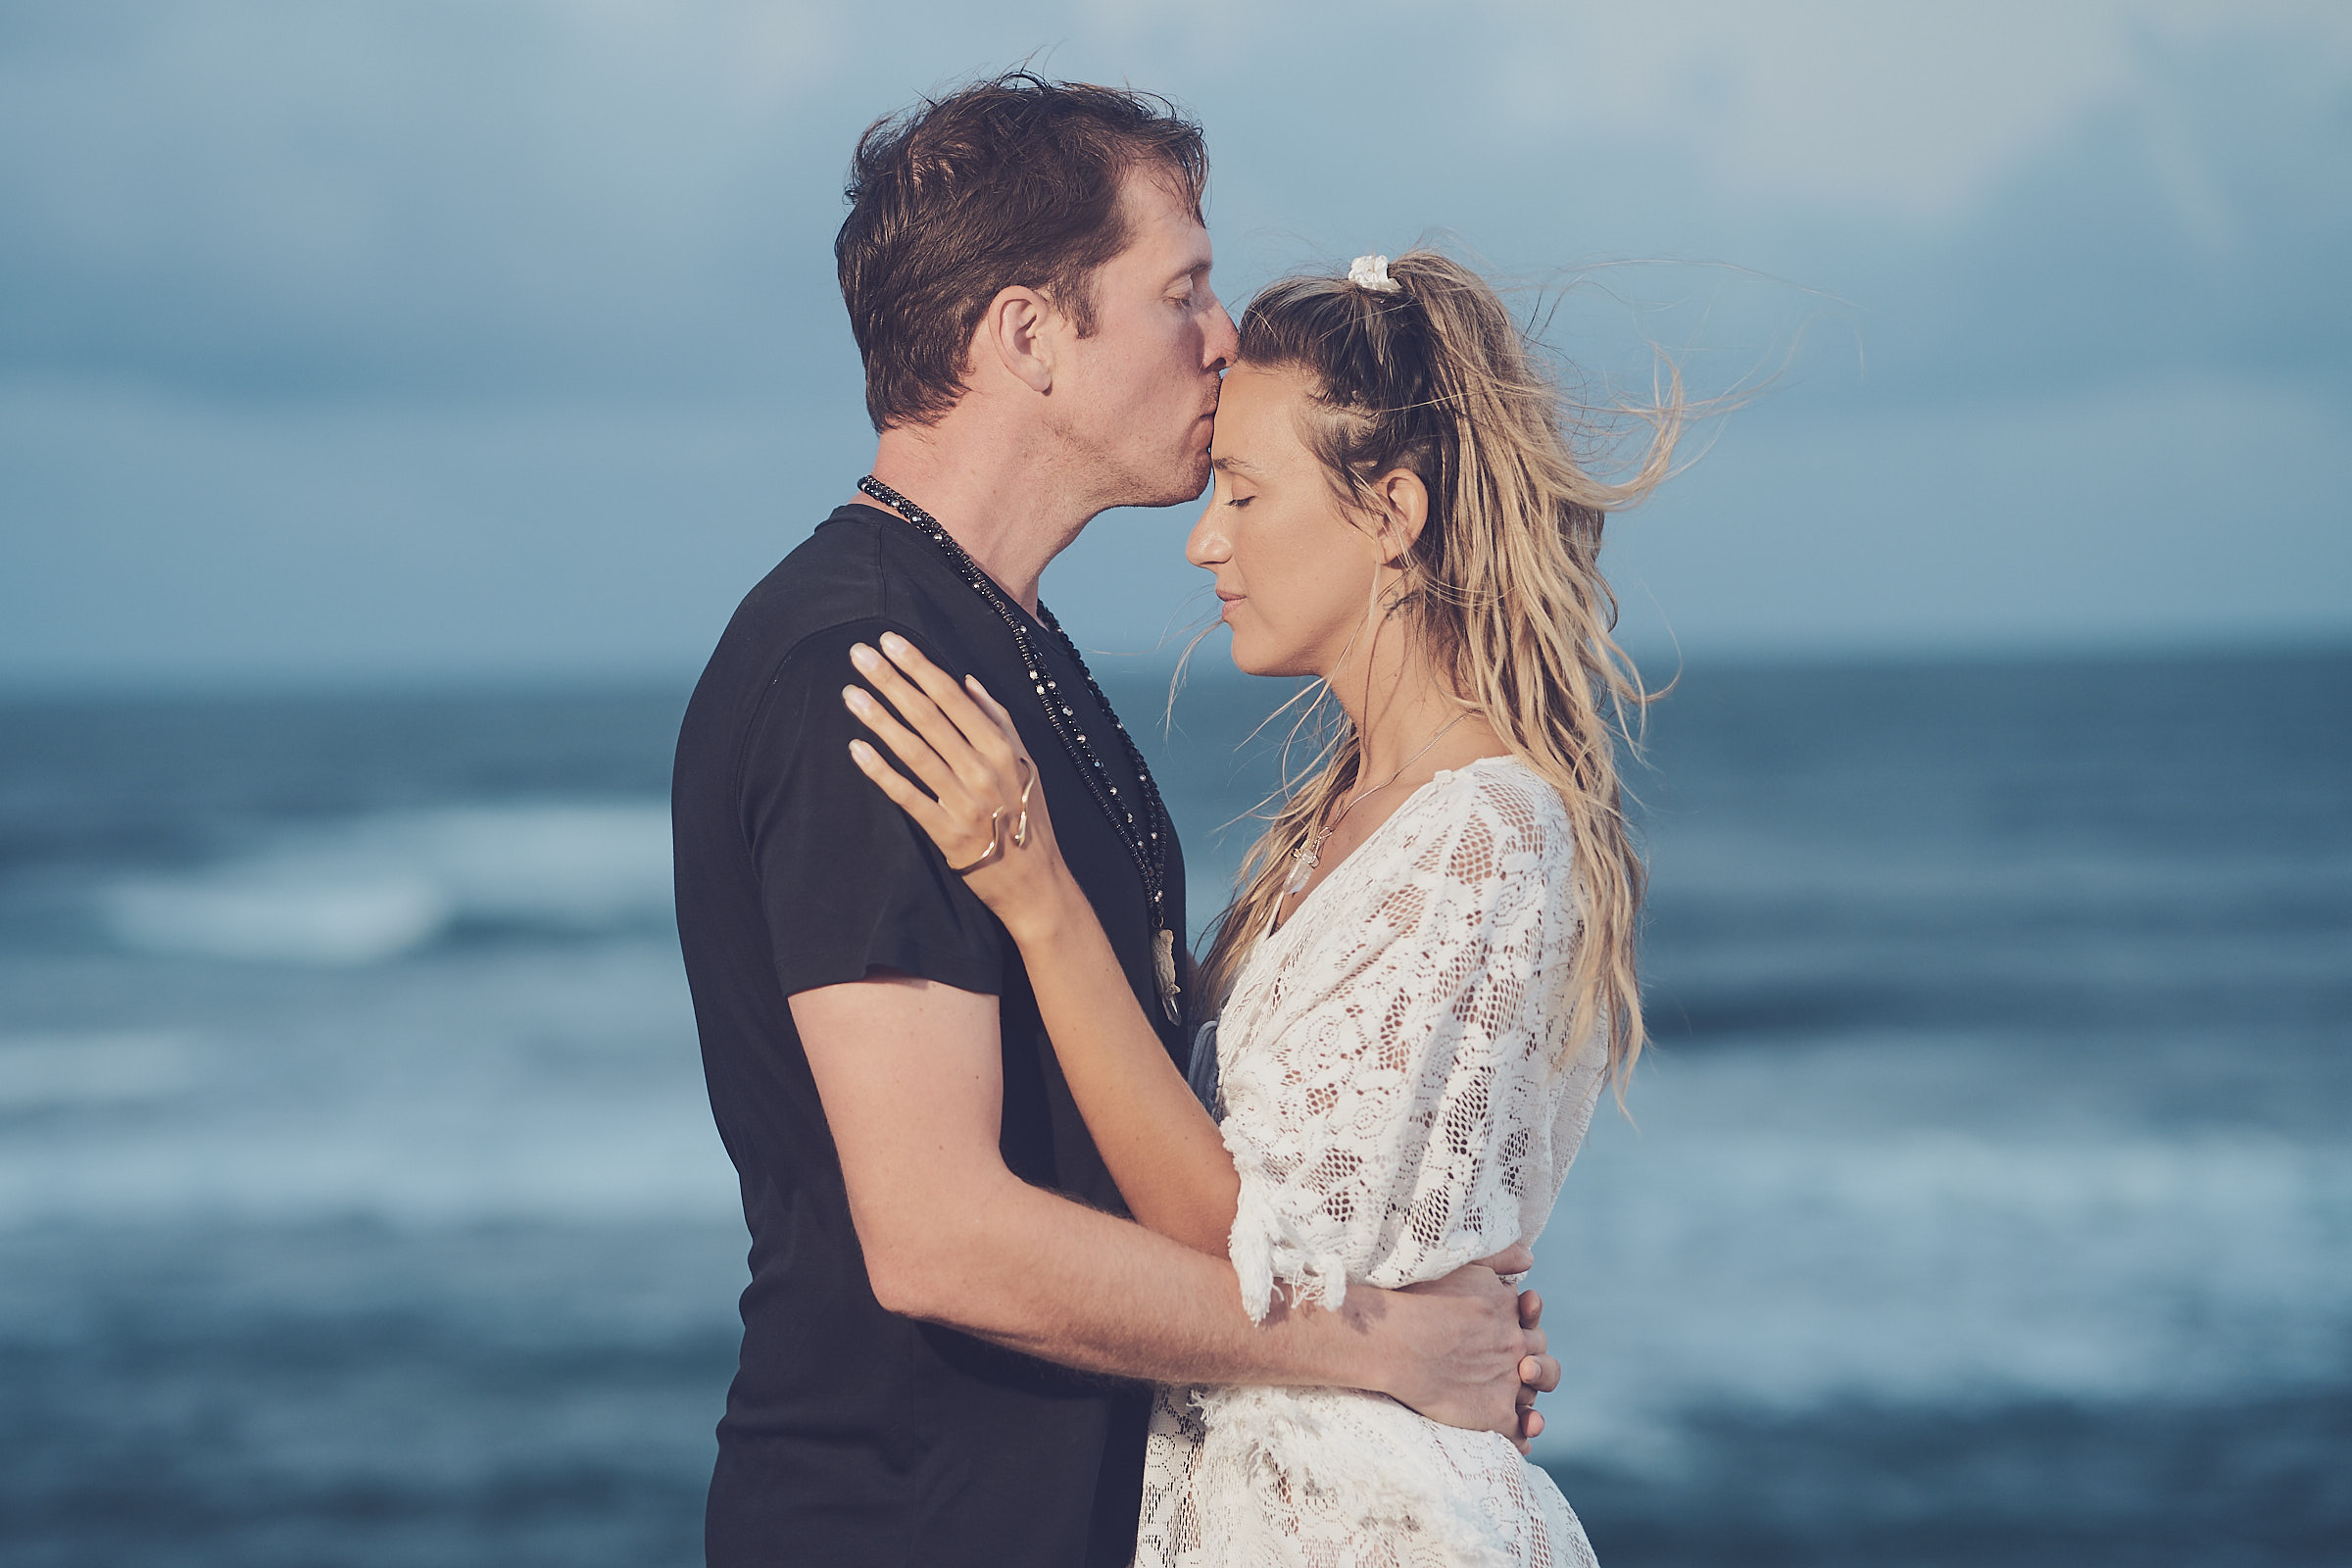 Cliff Engagement Photos In Hawaii